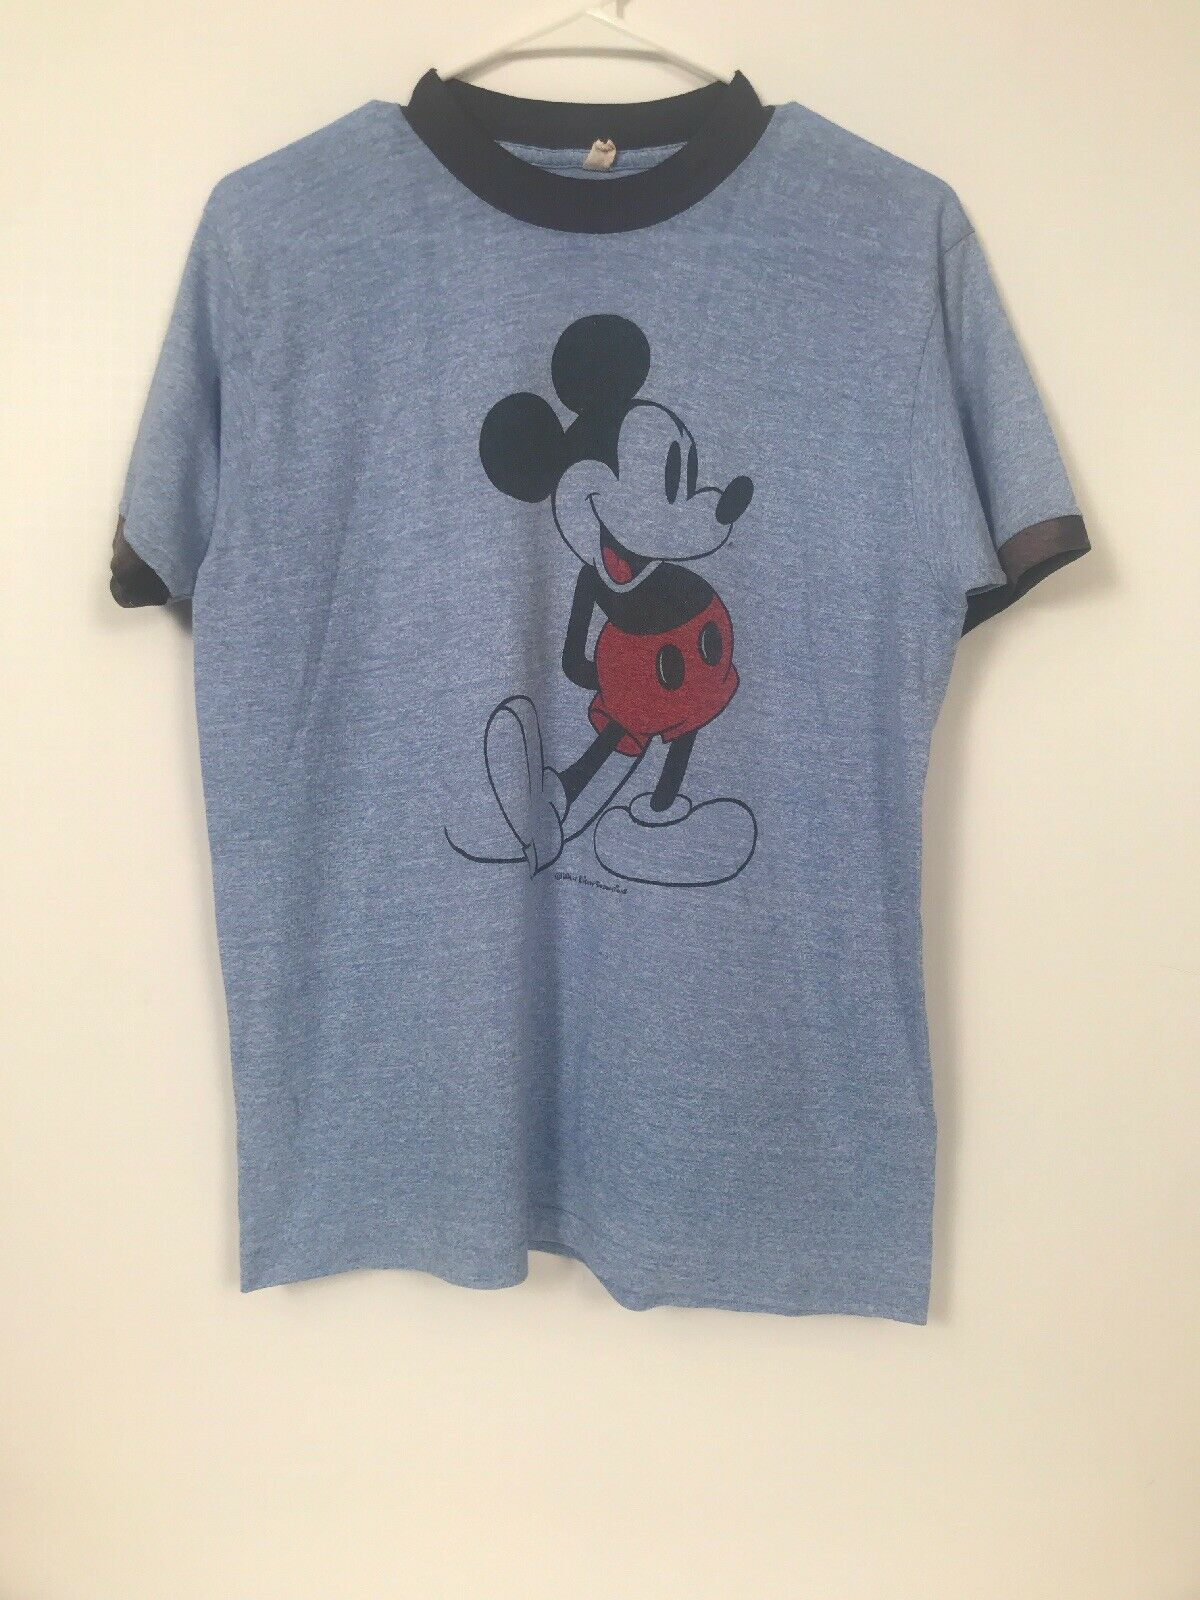 Lacoste Men/'s Steamer Blue Disney Mickey Mouse Graphic Crew Short Sleeve T-Shirt